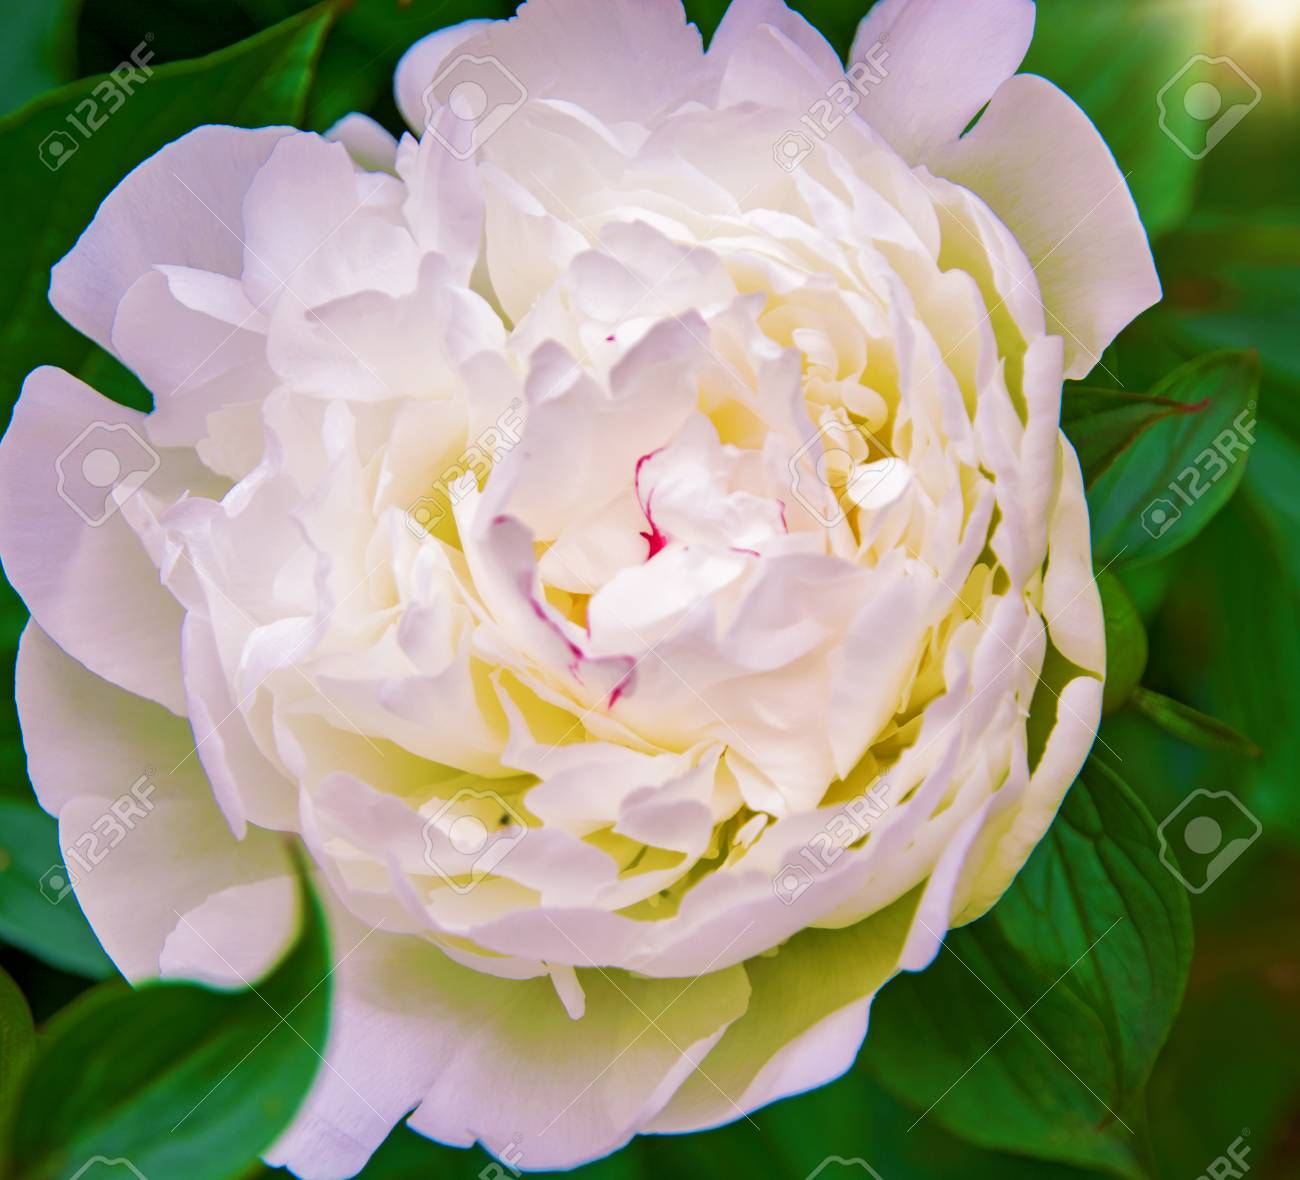 Large White Peonies Many Petals And Juicy Flower In The Bush